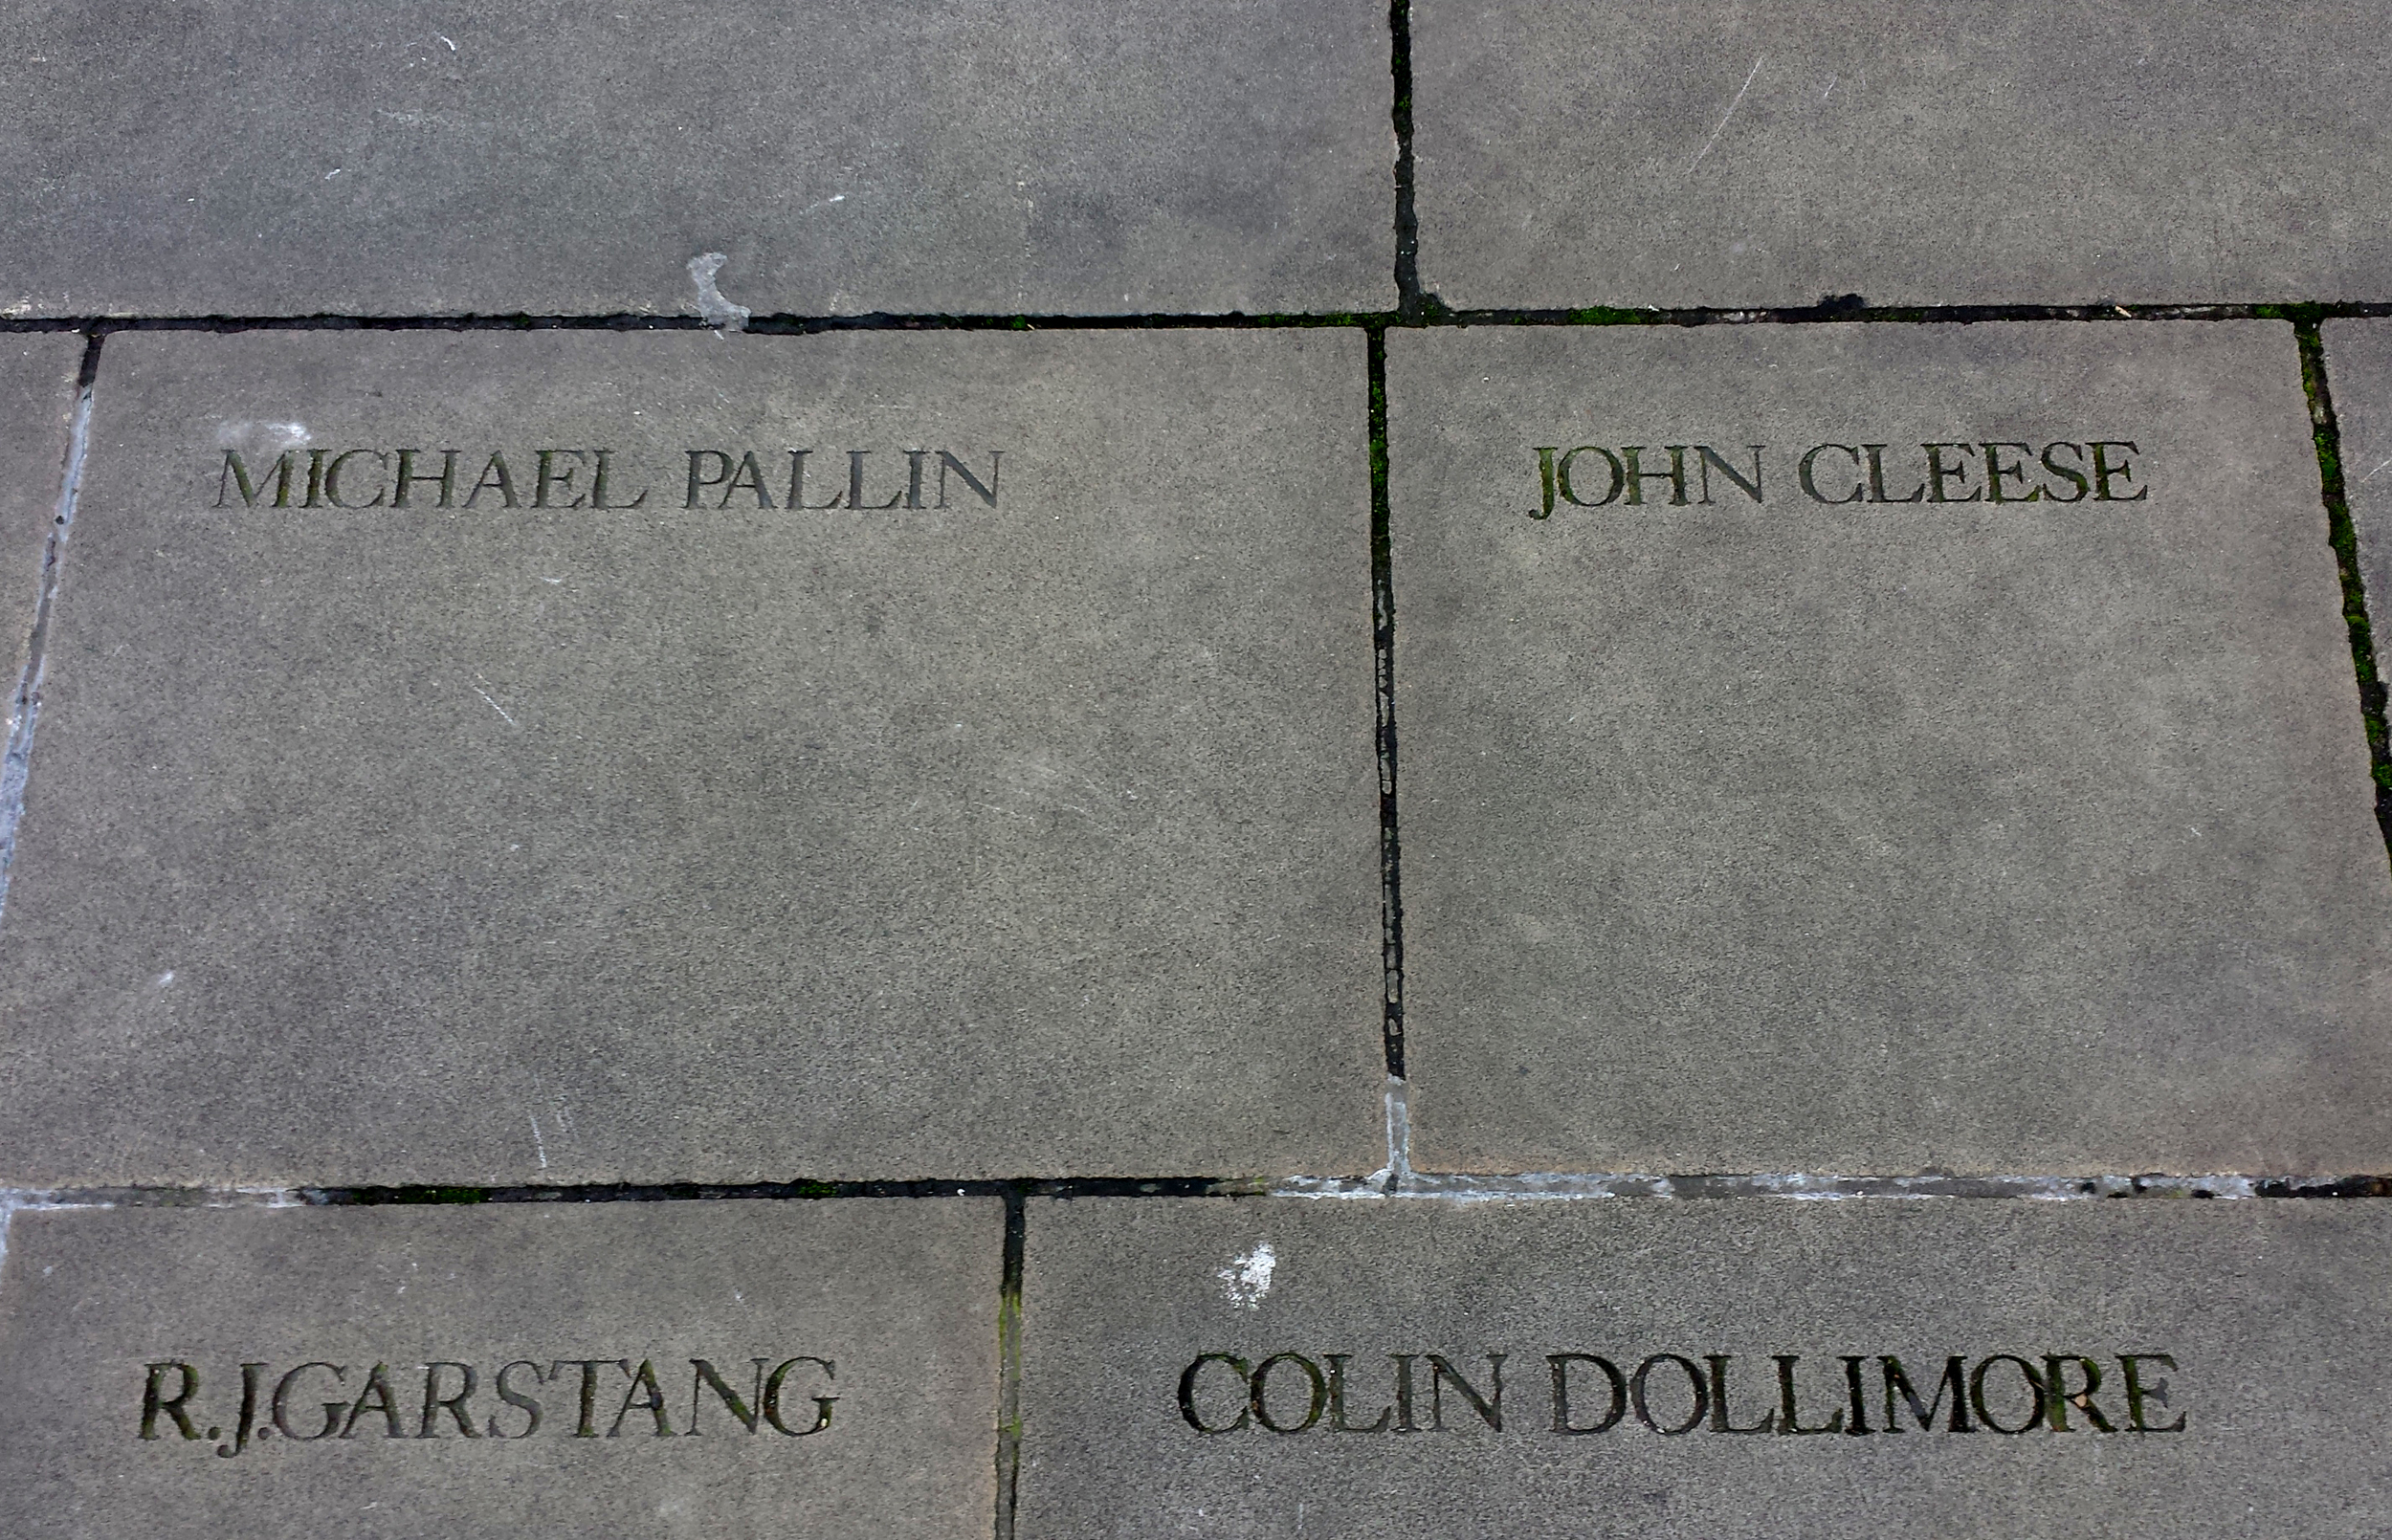 So, John Cleese paid for both of these stones at The Globe, on the condition that they spell Michael Palin's name incorrectly.